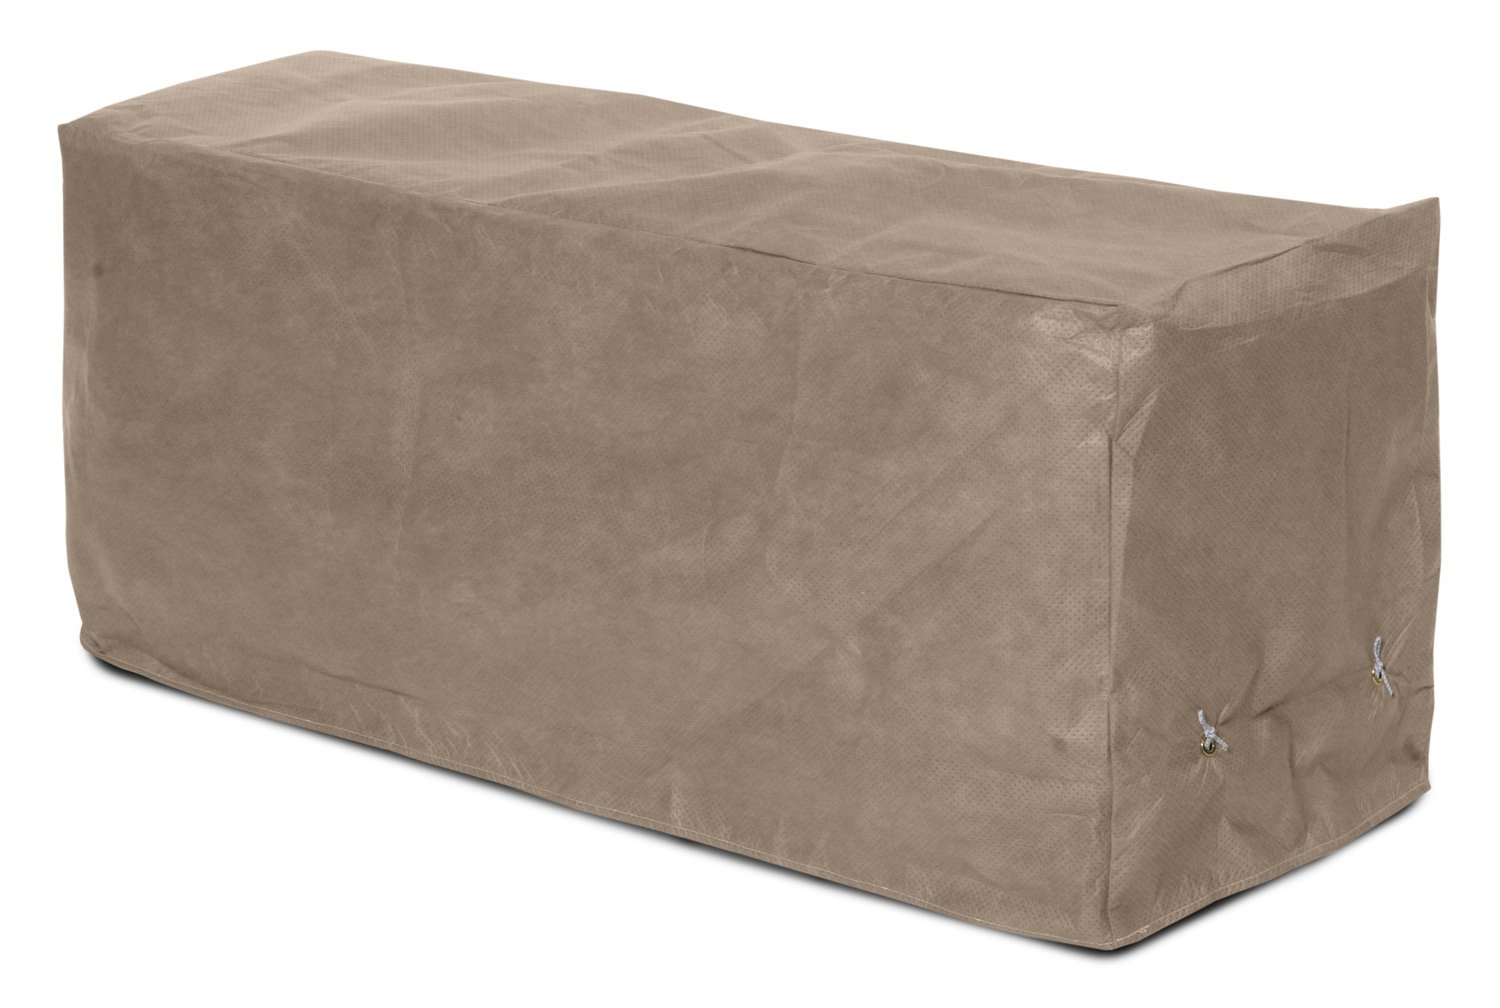 KoverRoos III 34207 8-Feet Bench Cover, 96-Inch Width by 25-Inch Diameter by 36-Inch Height, Taupe by KOVERROOS